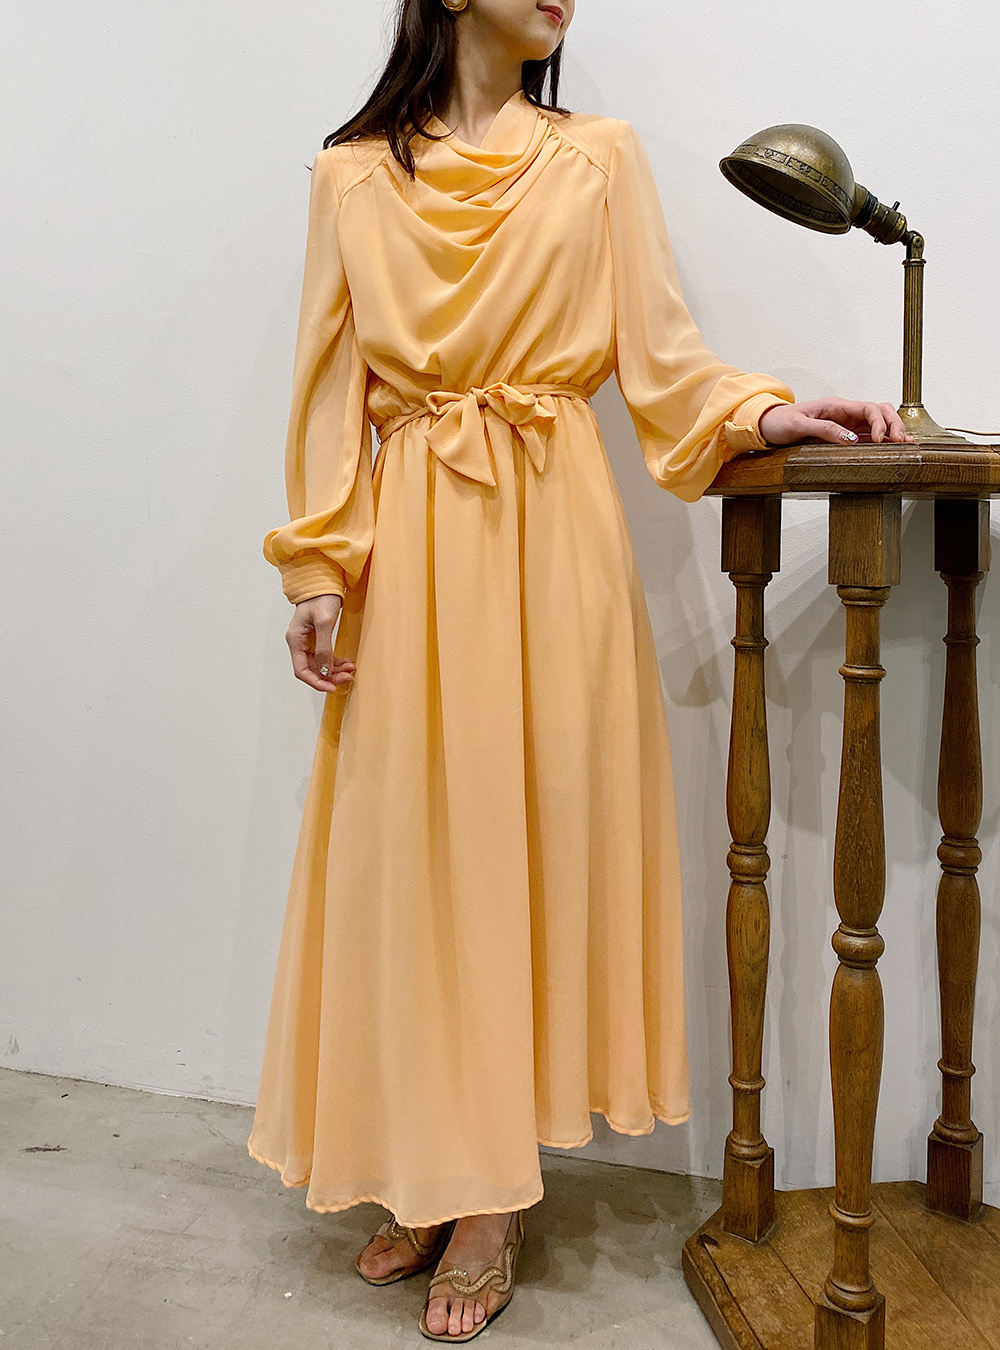 1970's Pail Orange Drape Dress